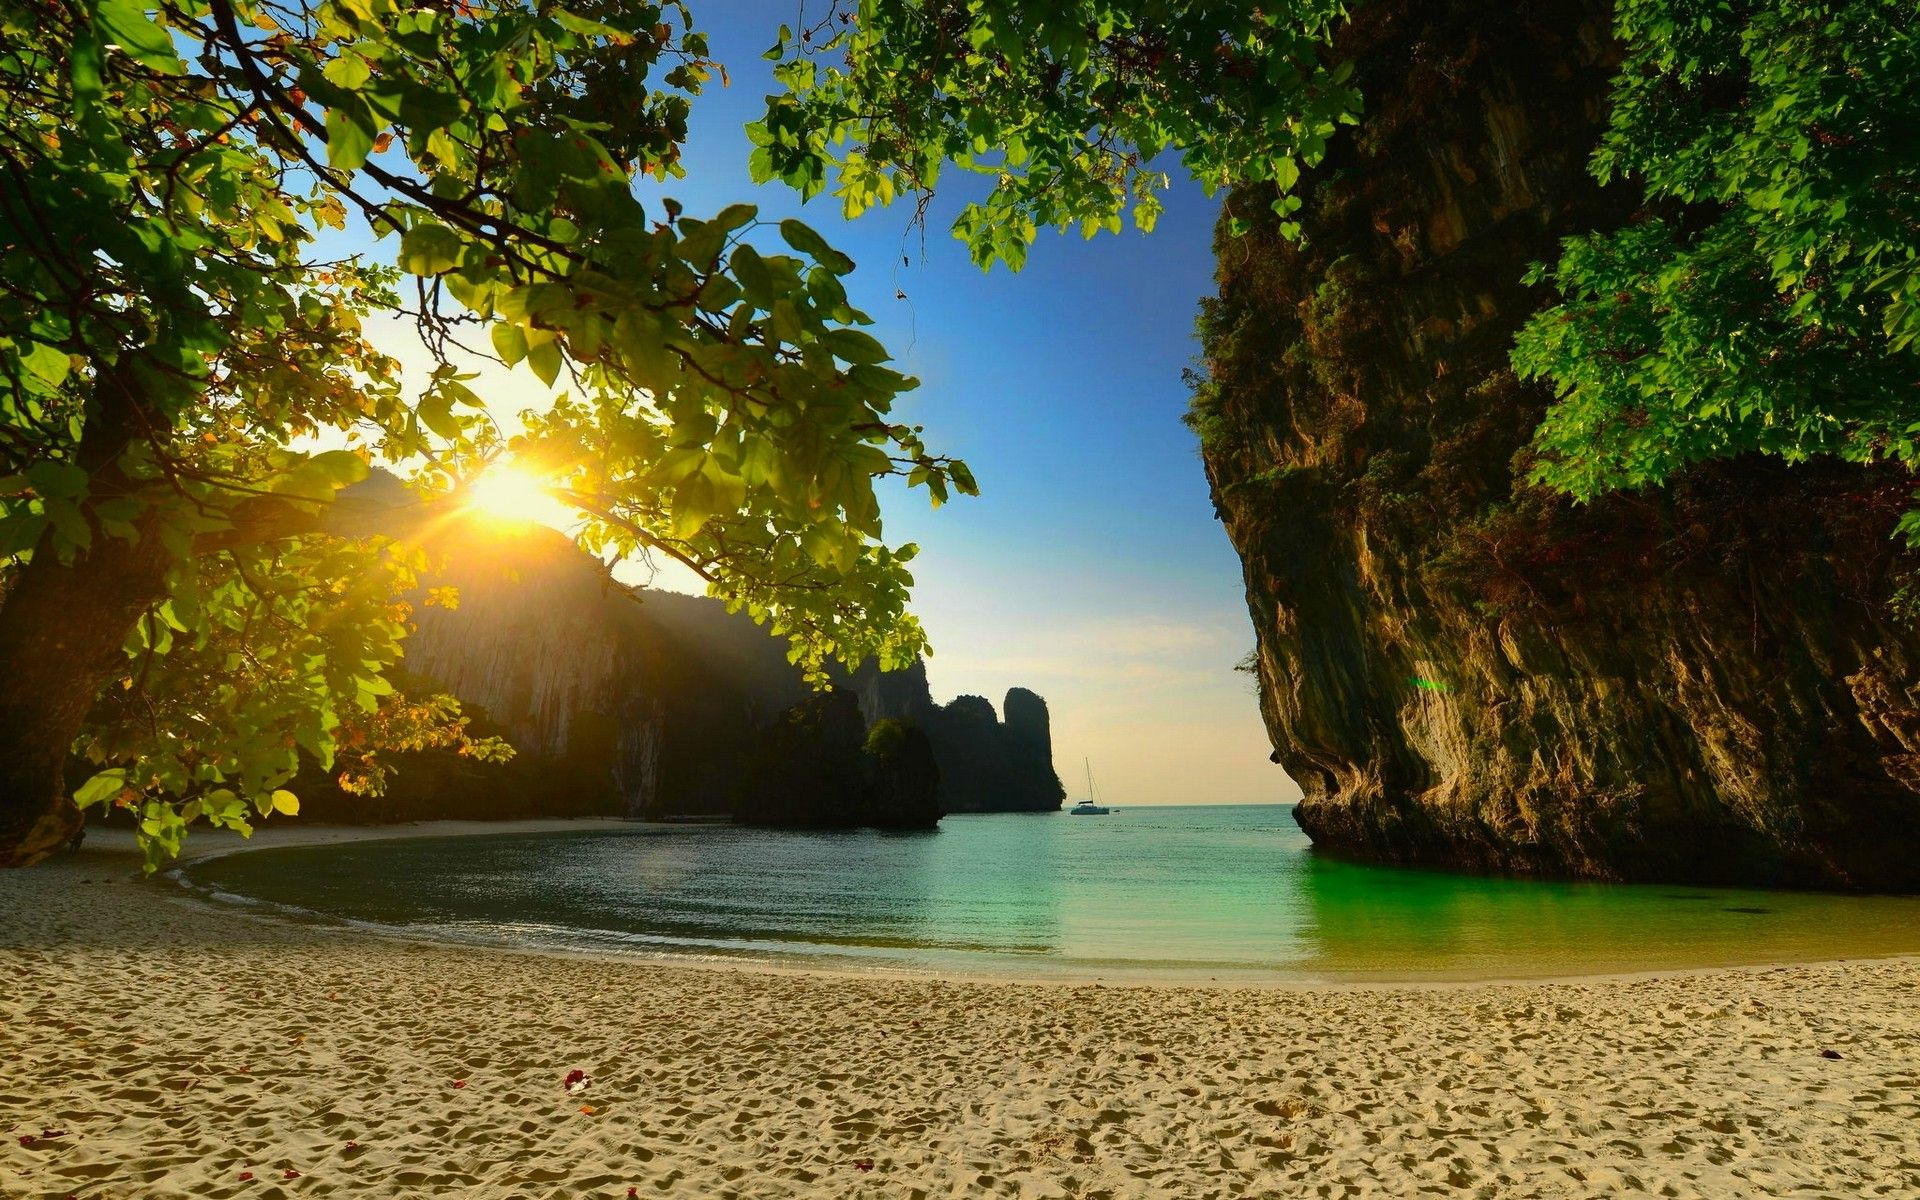 Thailand Landscape Wallpapers - Top Free Thailand